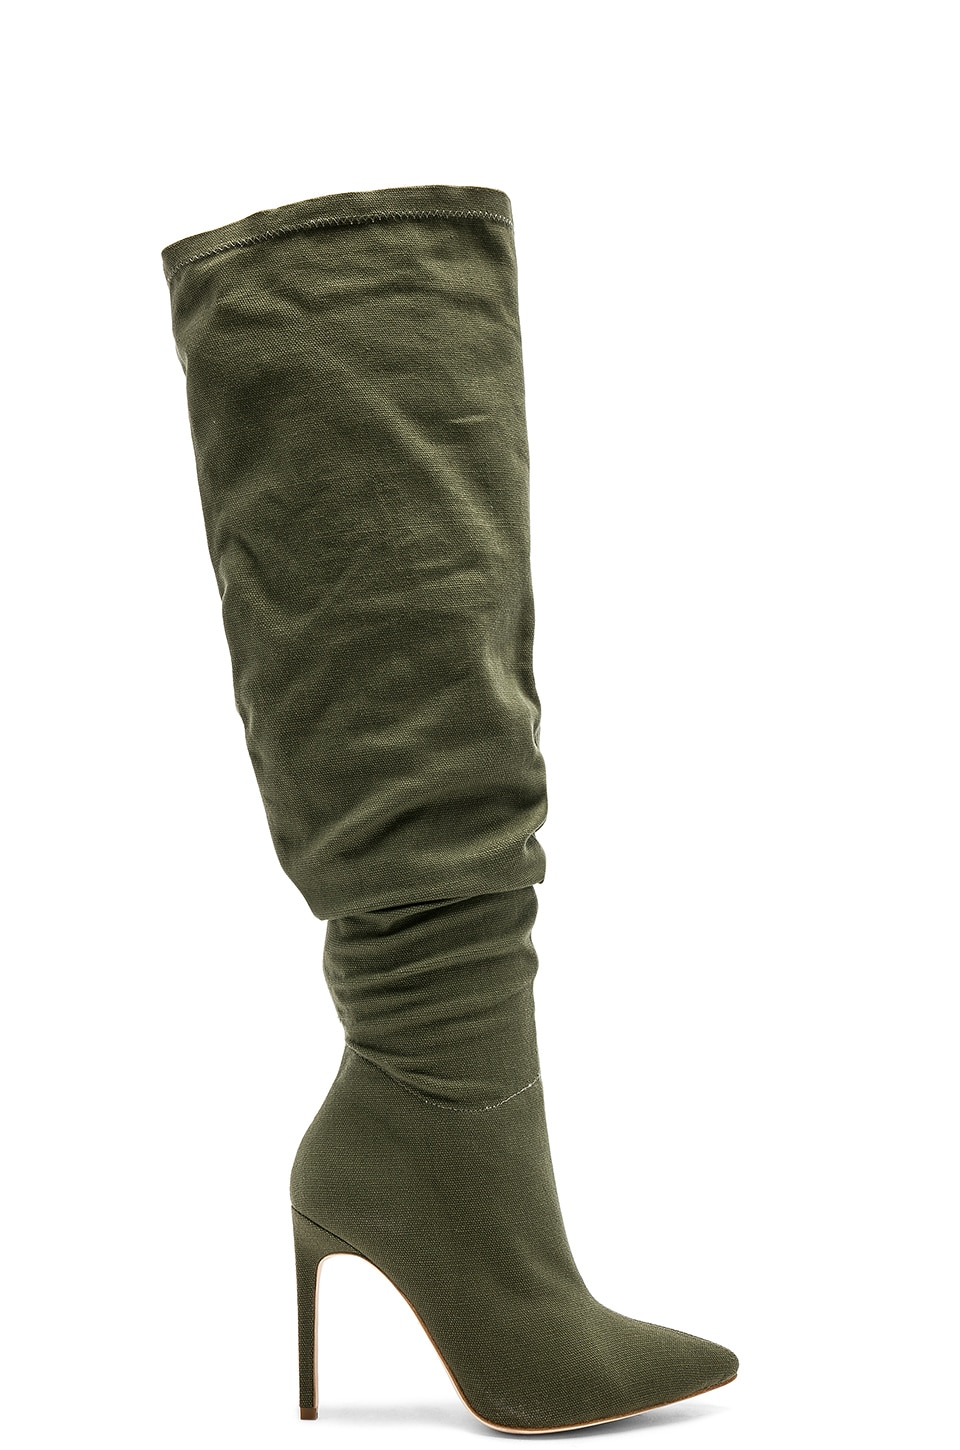 Zahara Boot in Beige. - size 7 (also in 10,5.5,6,6.5,7.5,8,8.5,9,9.5) Raye